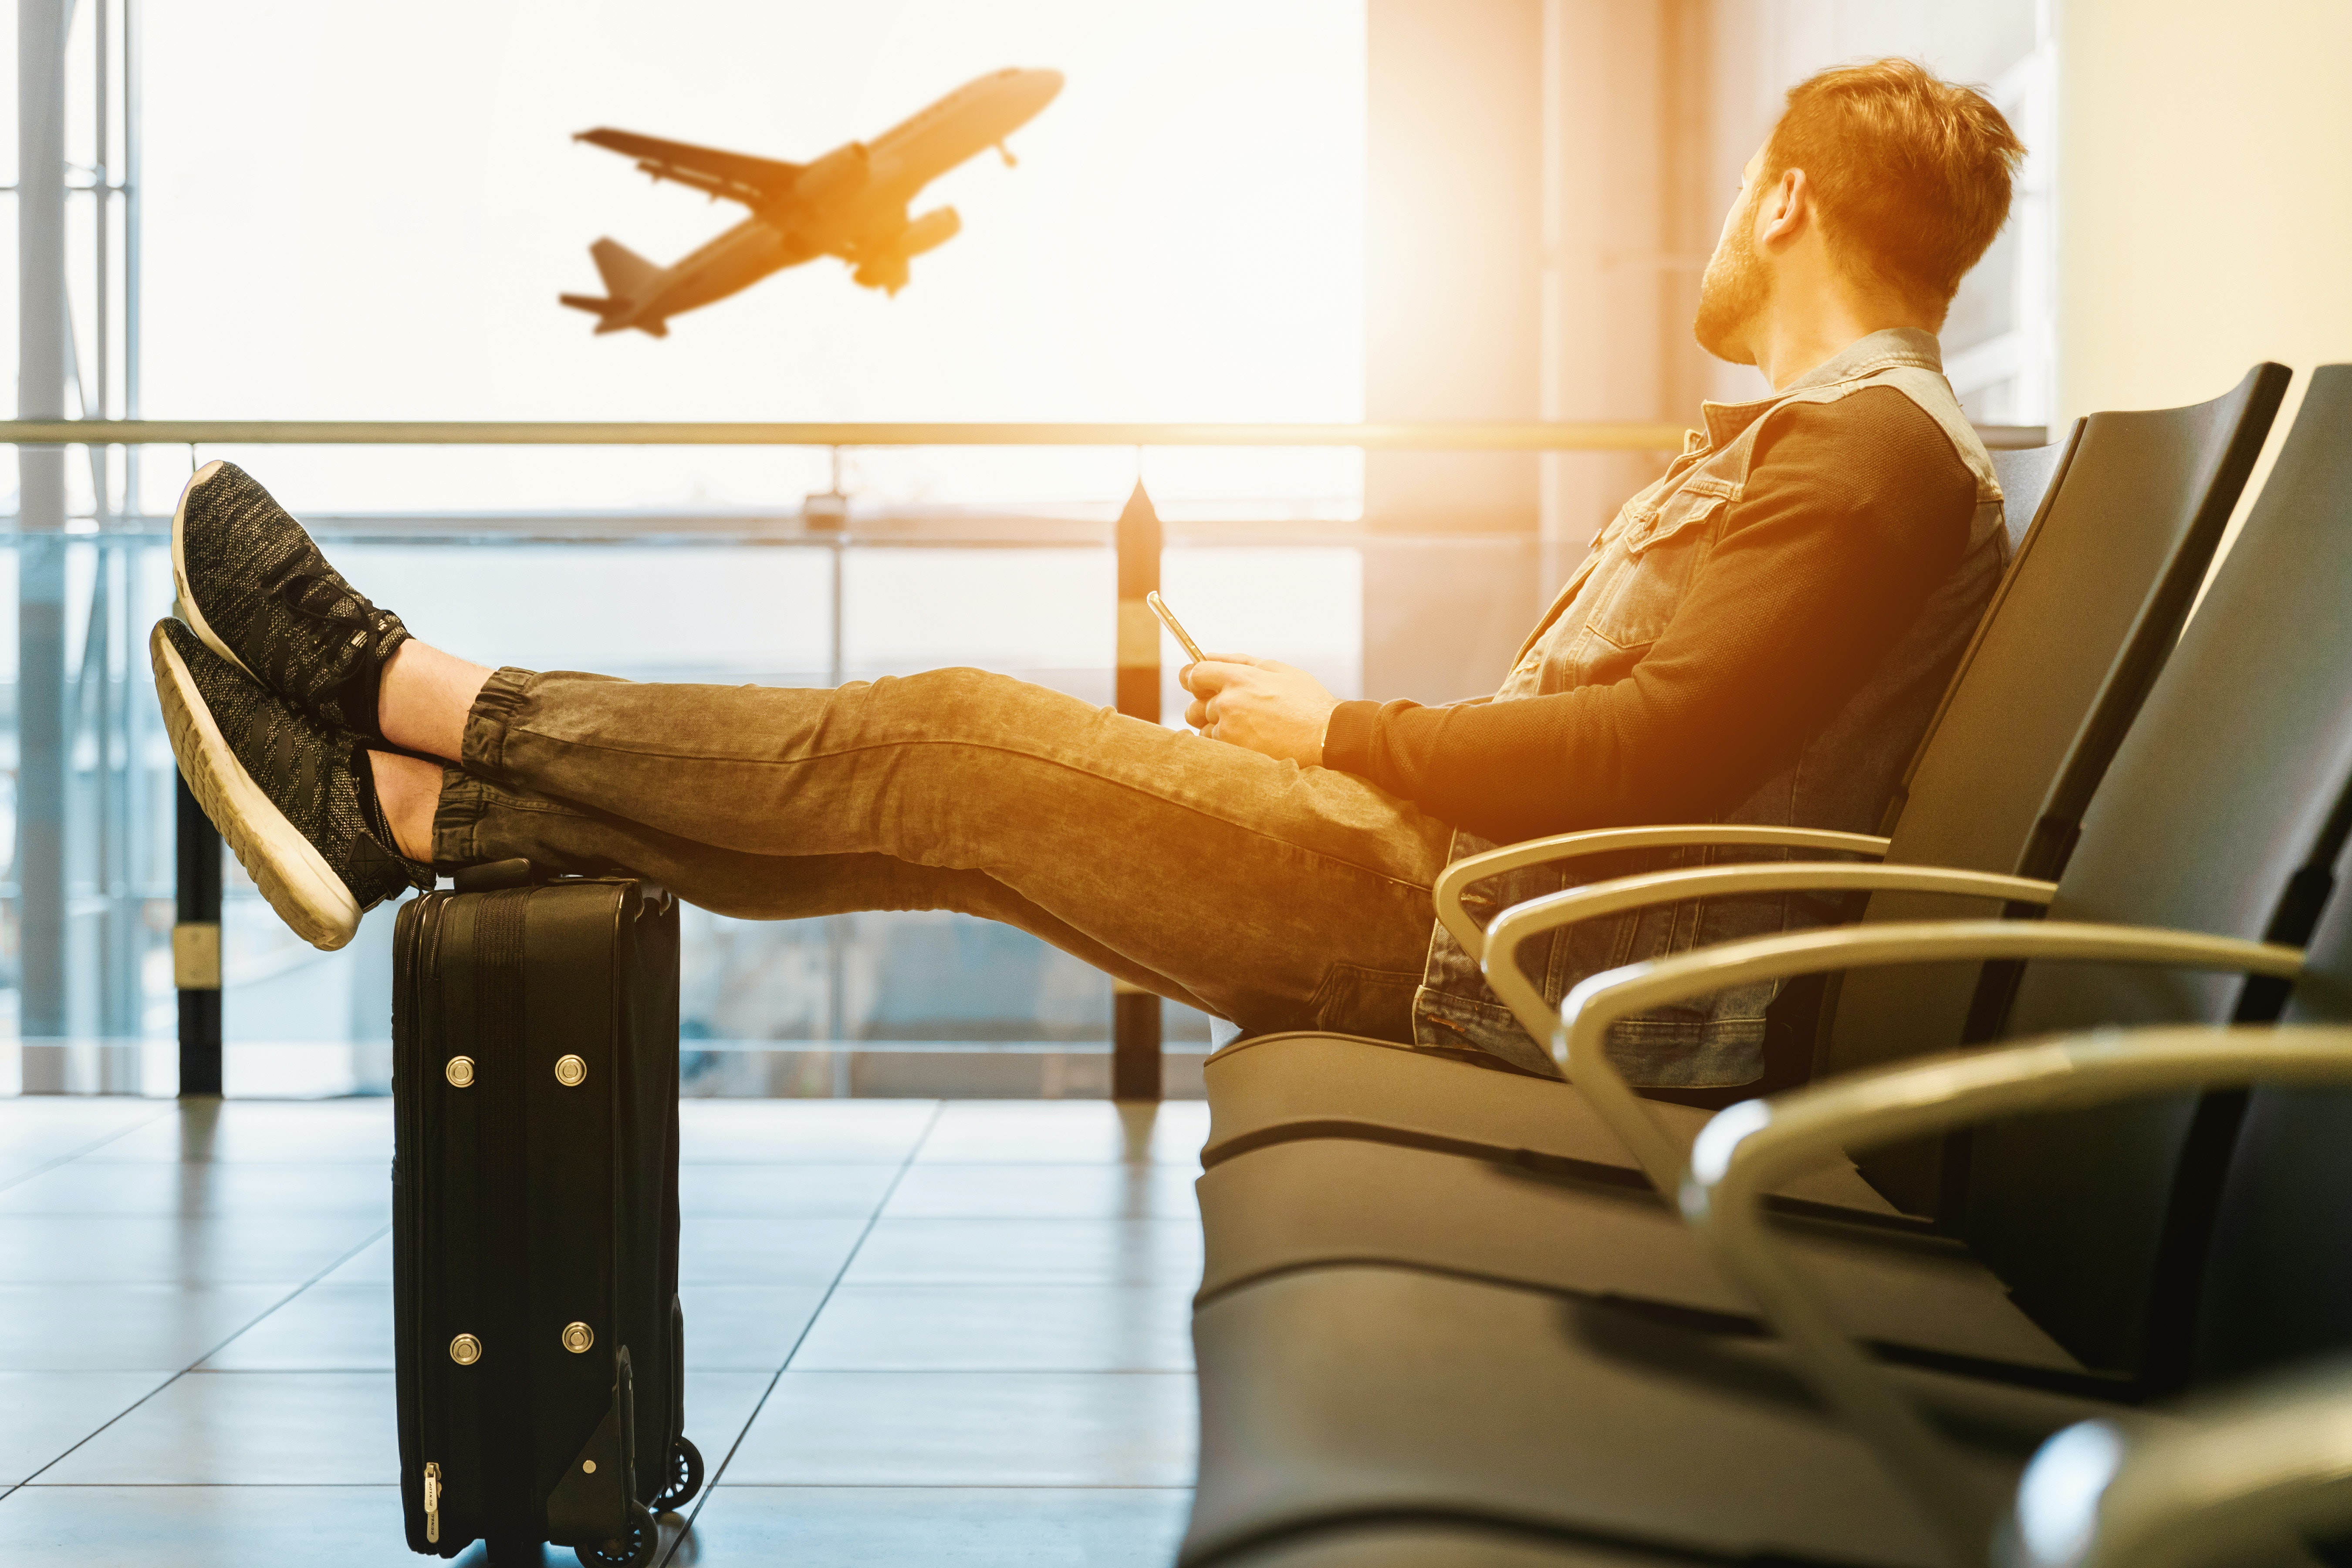 man sitting in airport on phone with feet on luggage